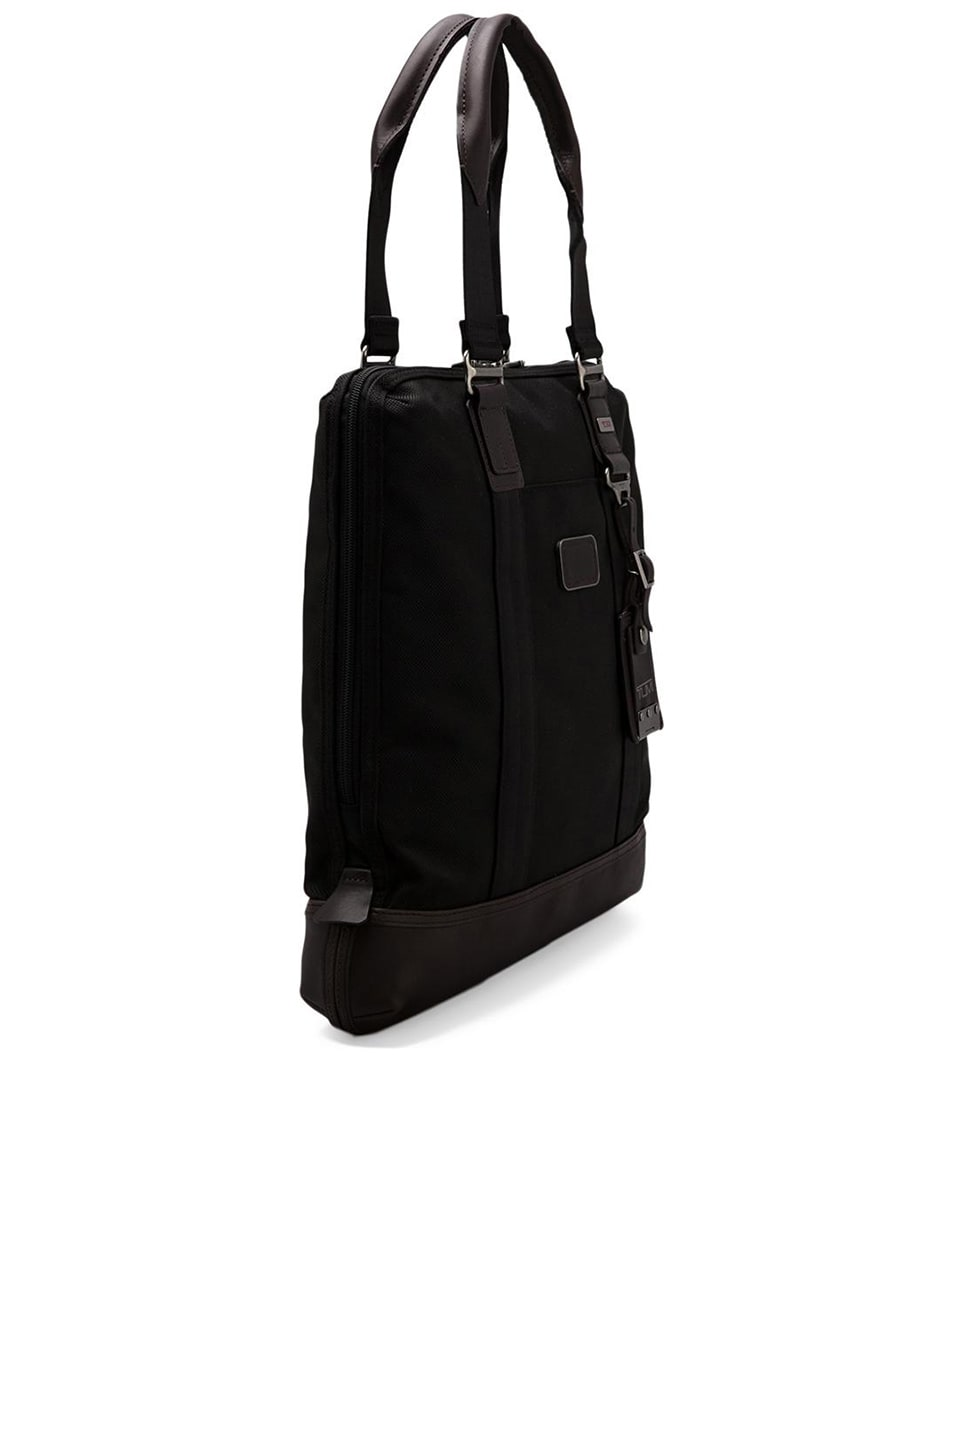 Tumi Alpha Bravo Beaufort Tote in Hickory